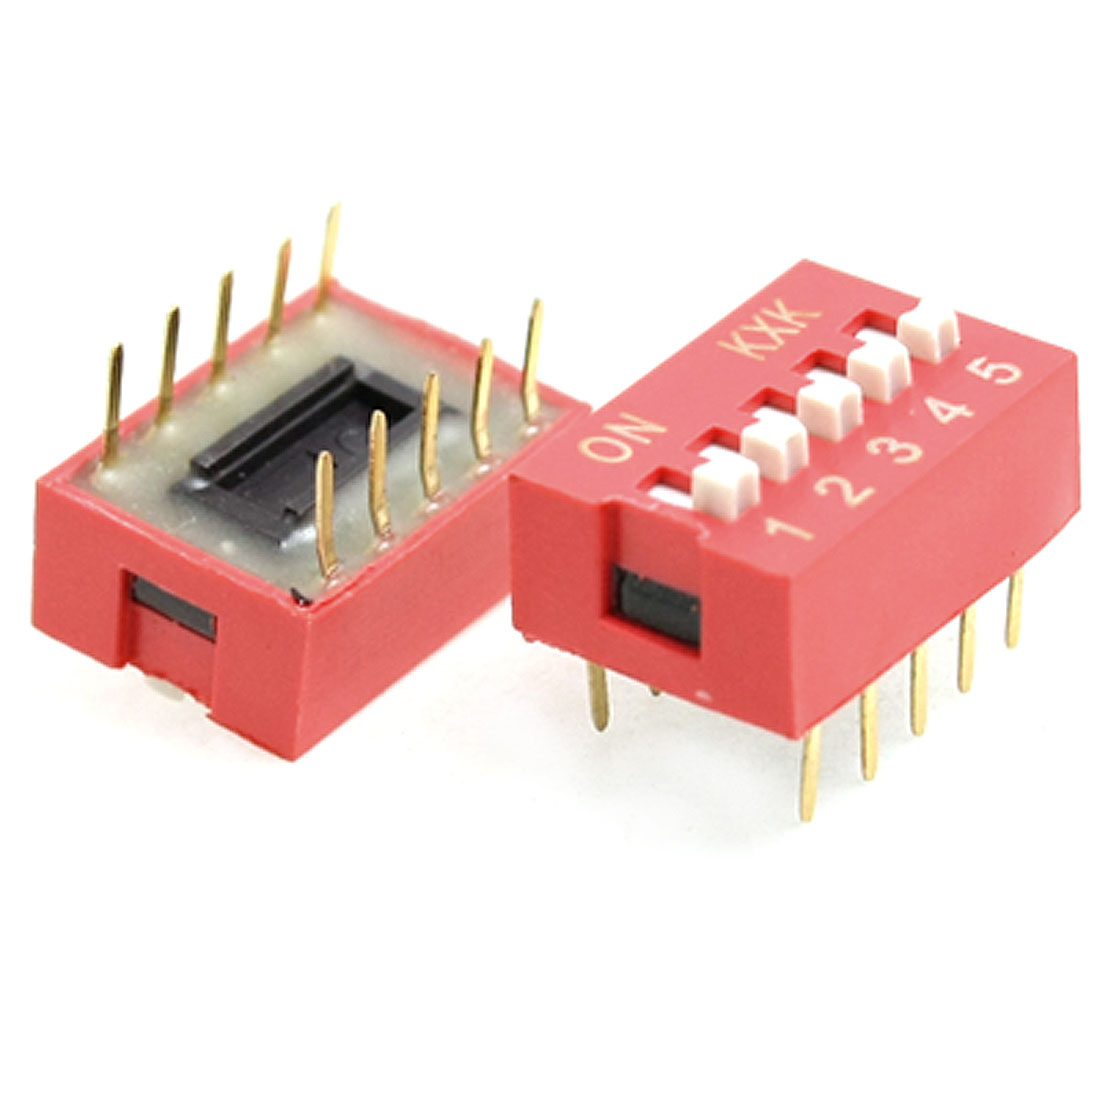 10 Pcs Red Double Row 10 Pin 5P Positions DIP Switch 2.54mm Pitch